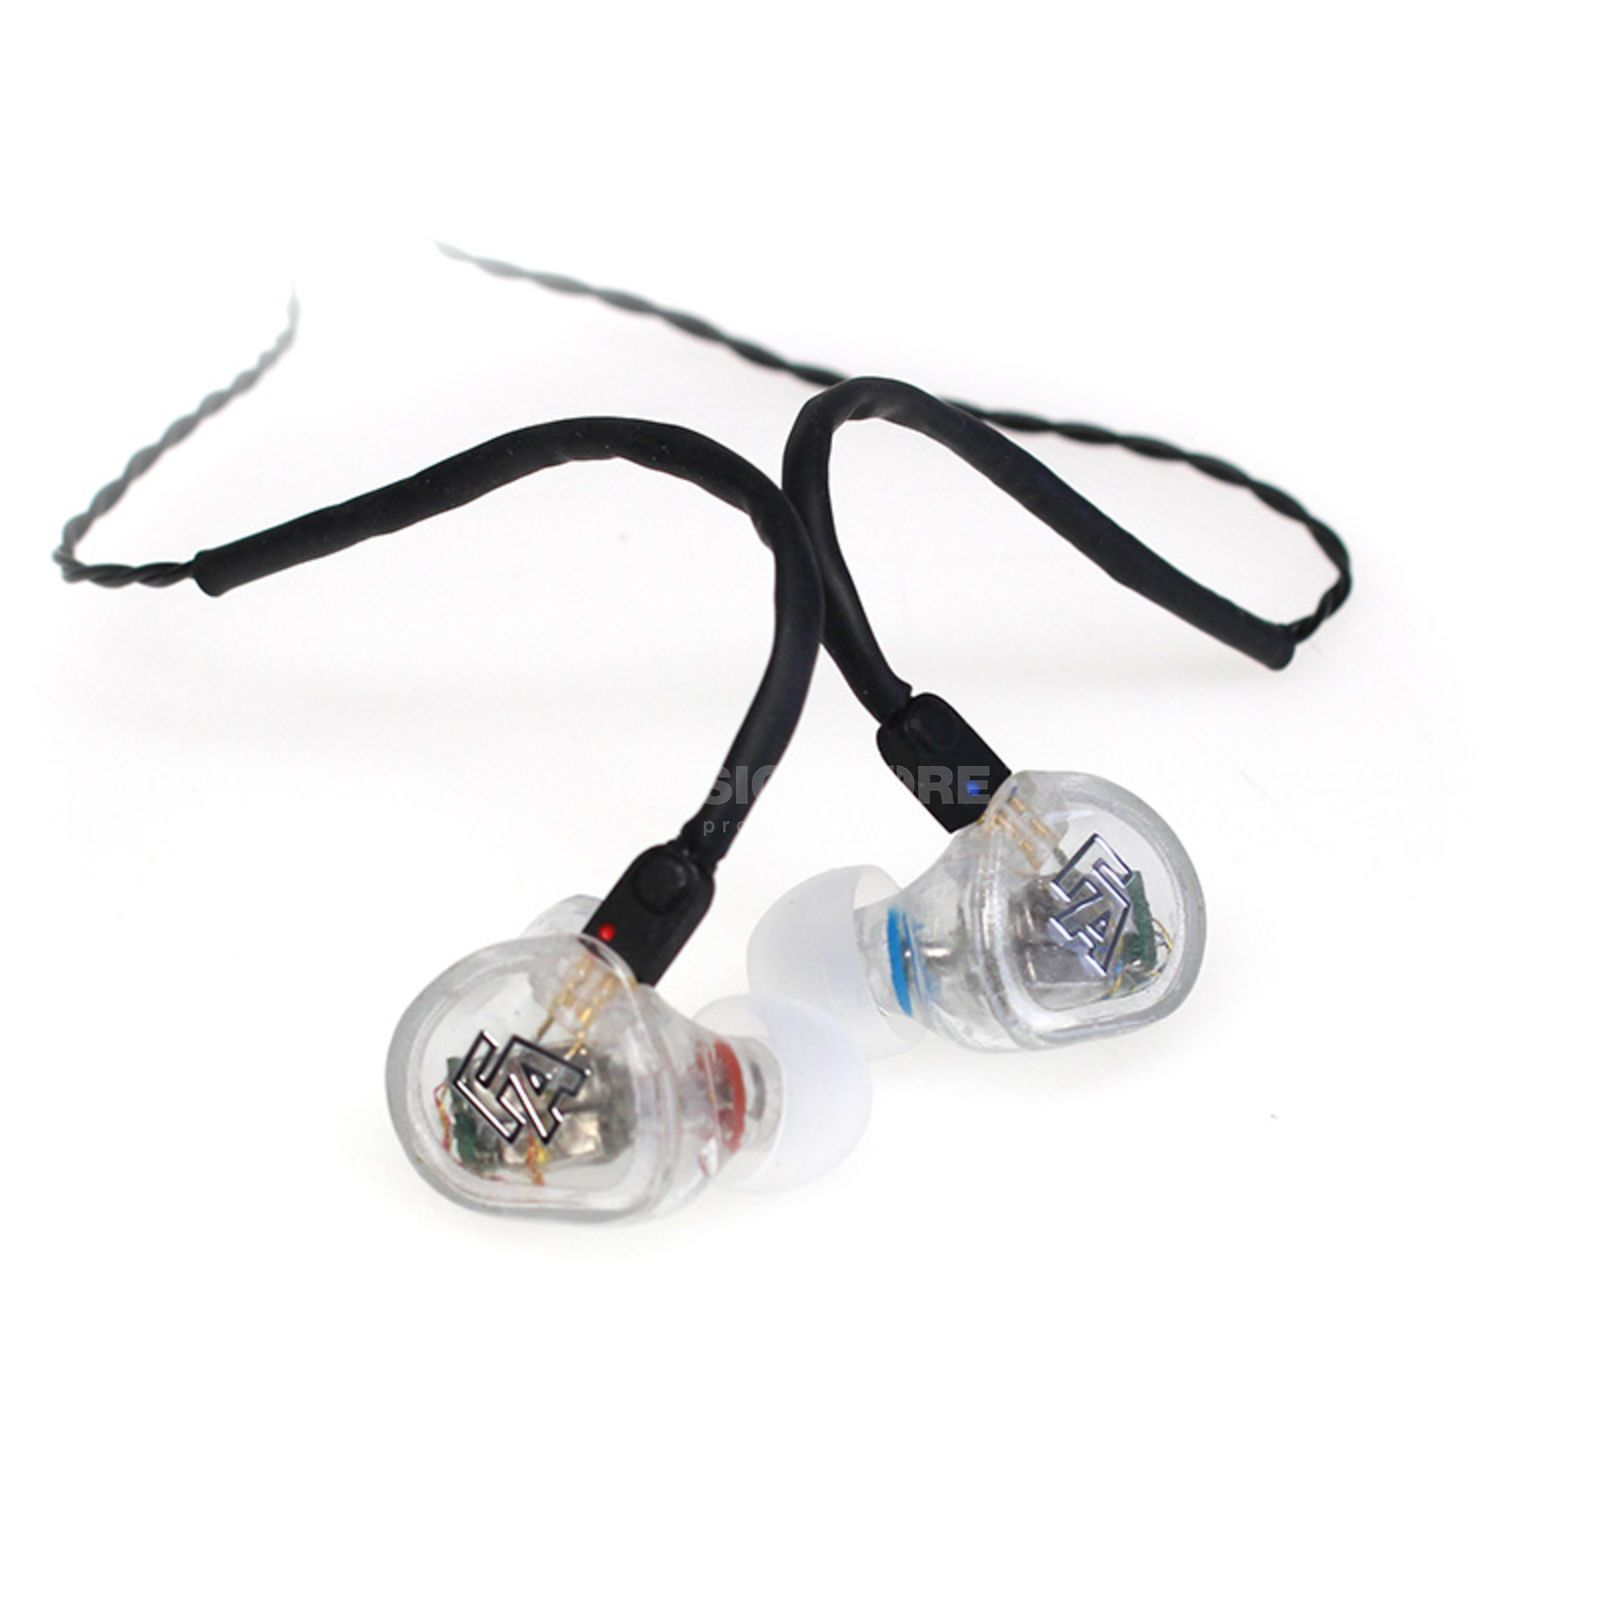 Fischer Amps Rhapsody Lithium clear In Ear Hörer Image du produit